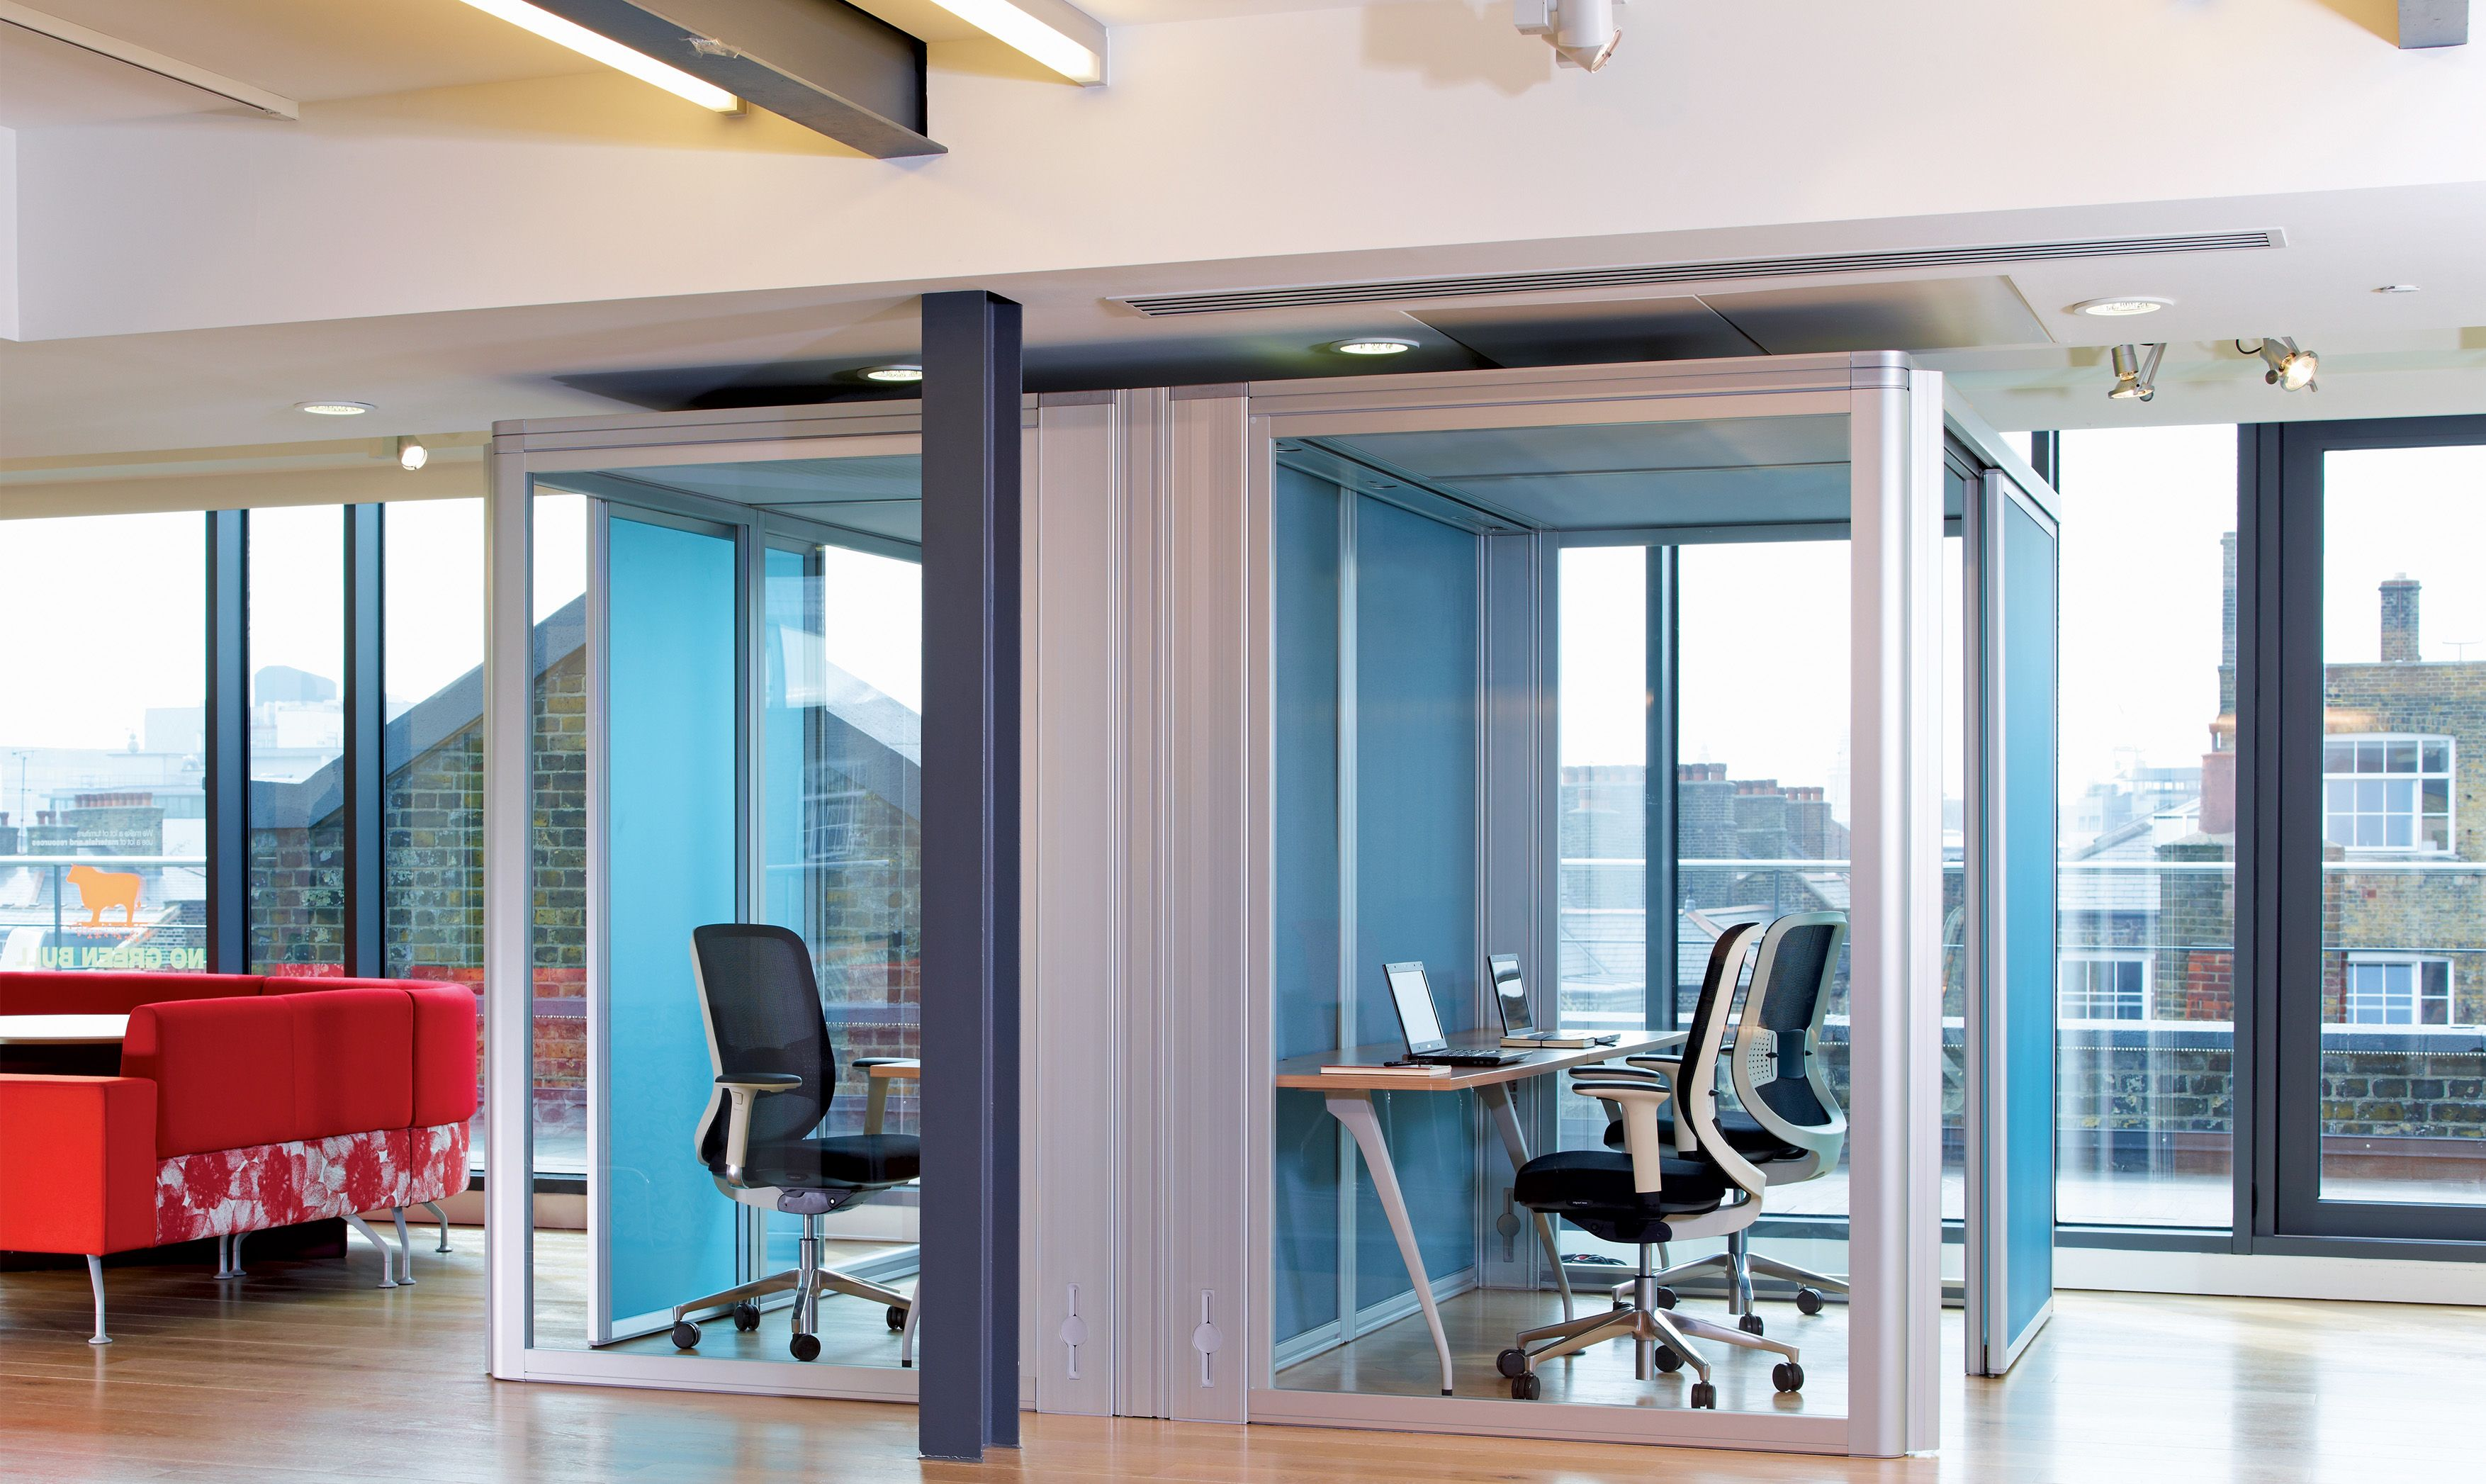 Bespoke office pods suitable for informal meeting areas